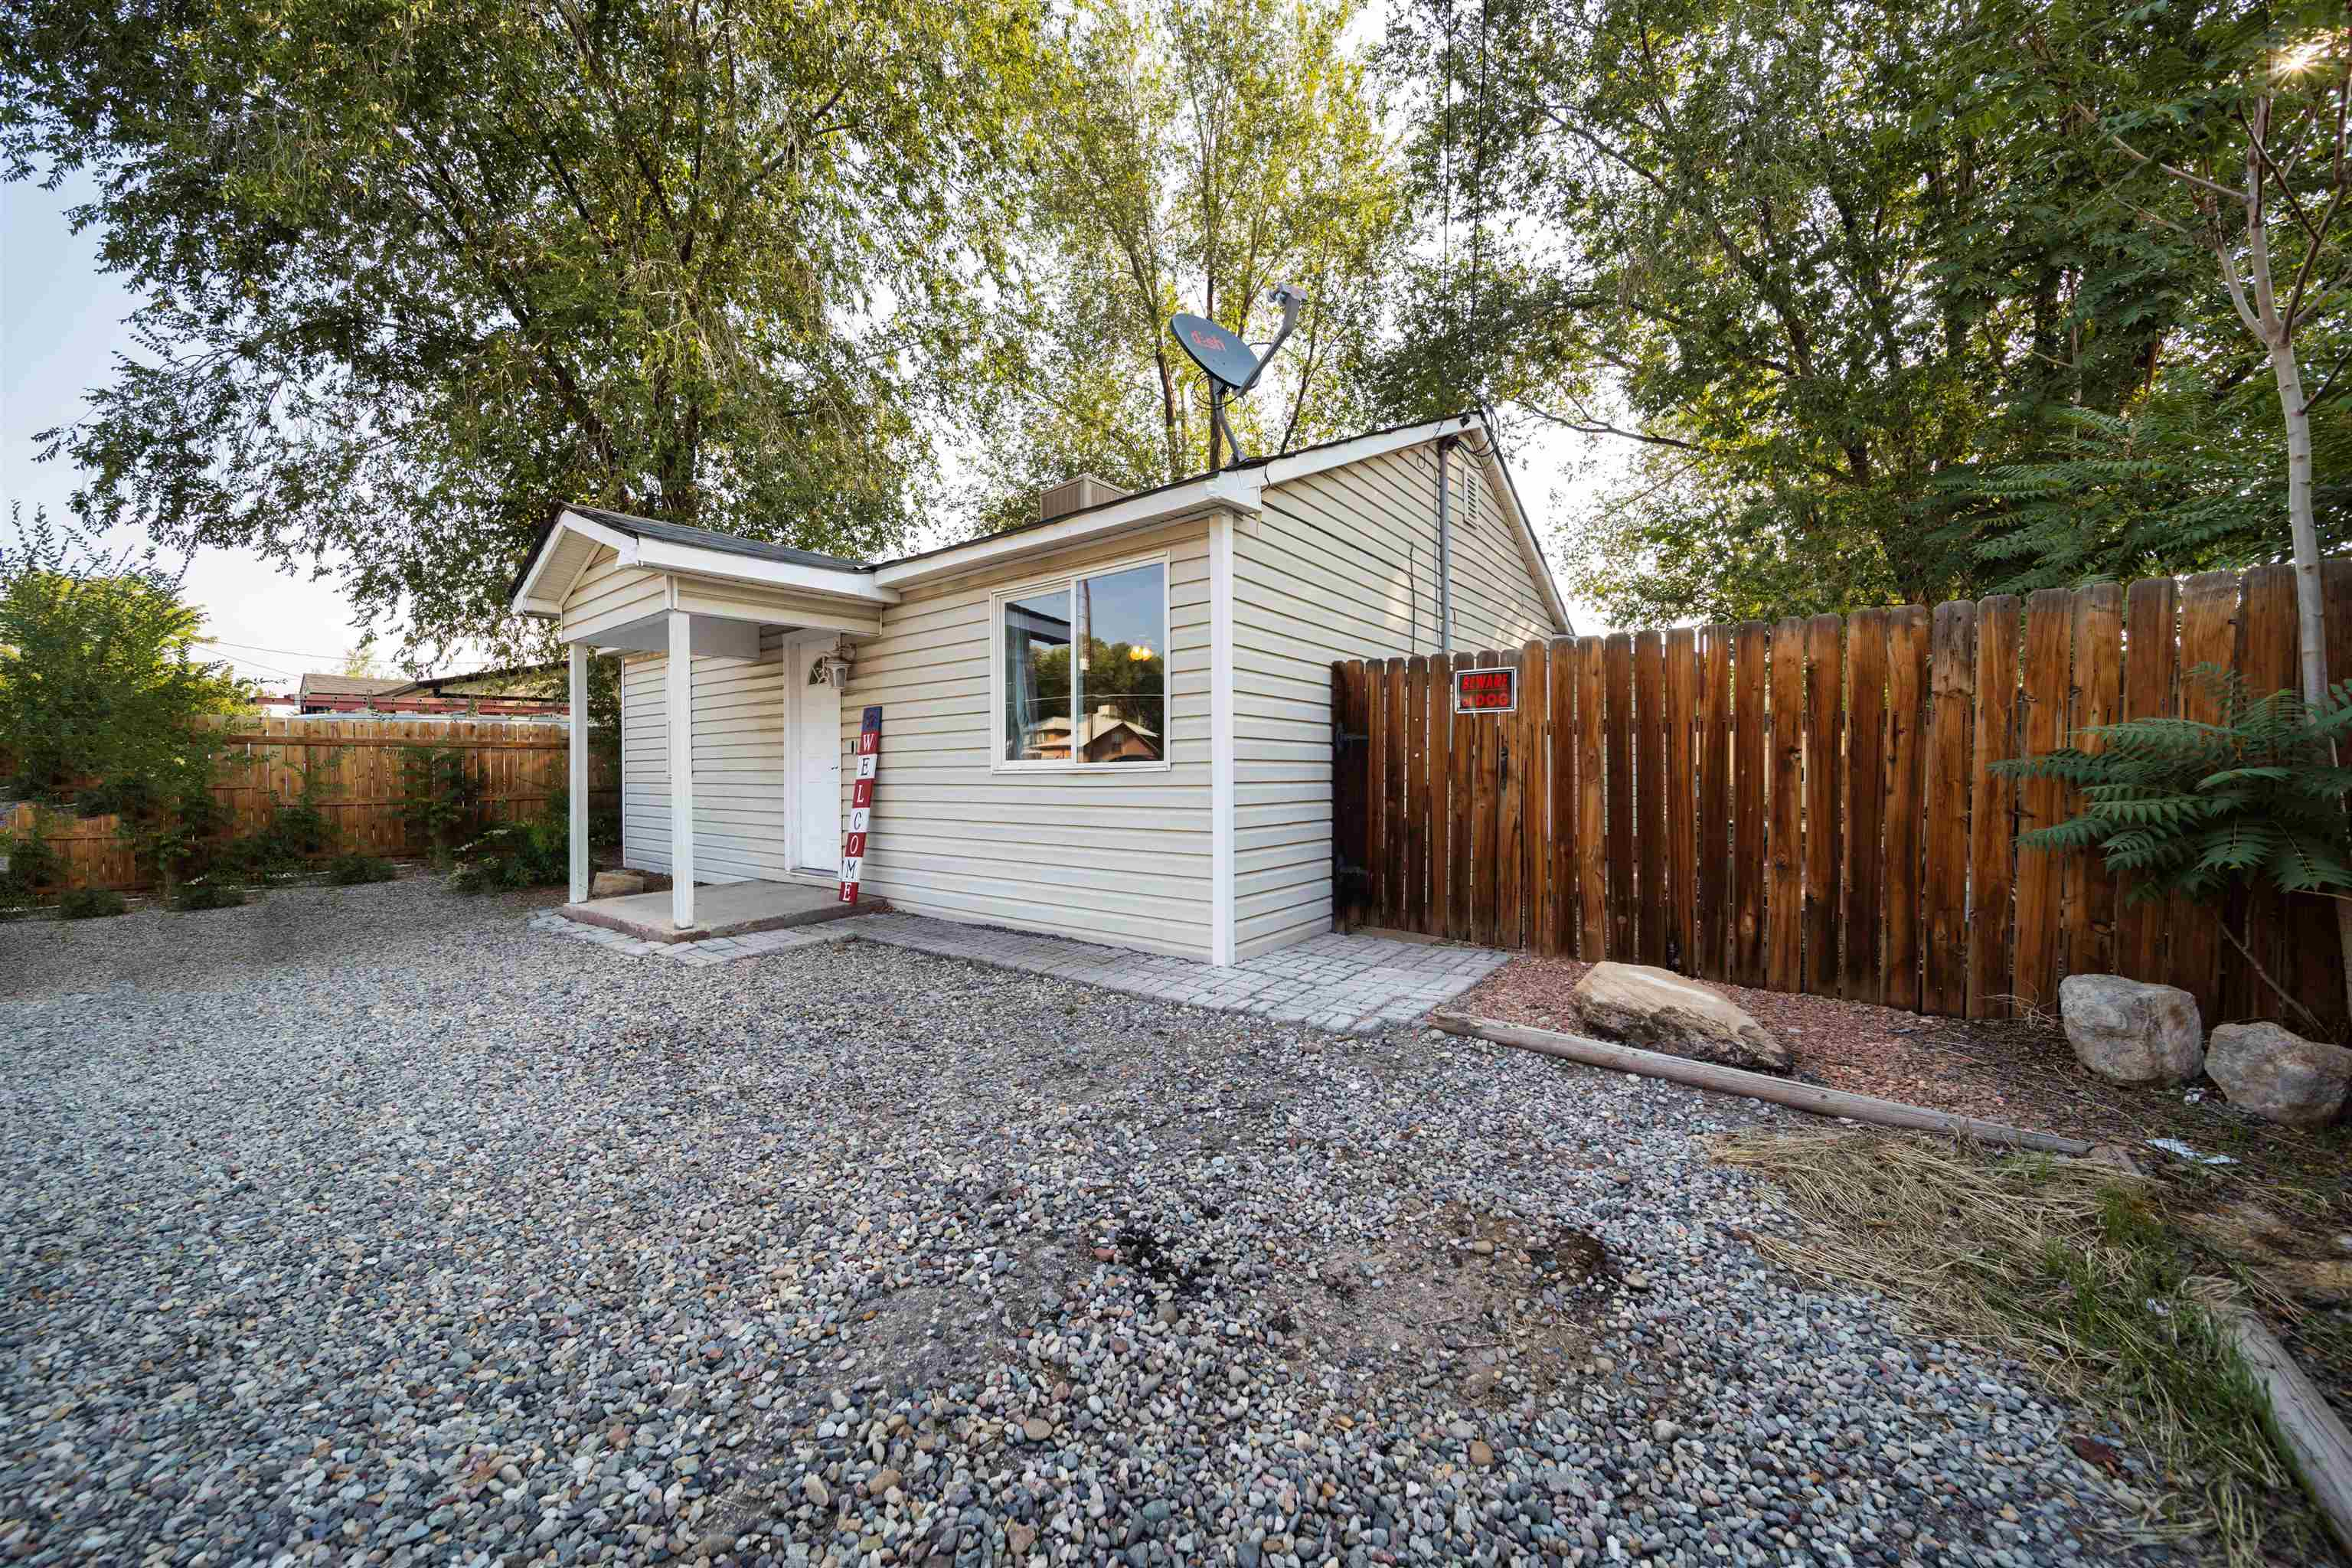 Cute home situated on a decent sized lot. No HOA!! Open living room/dining room concept. Large kitchen area. Ample space for boat or RV parking or whatever toys you want. Conveniently located for easy access to I-70B and Patterson rd. Includes detached 12' x 20' garage and 7' x 9' storage shed with access from behind the property off Market Way & Rosevale Drive. Great starter home or investment property. Schedule your showing today!!